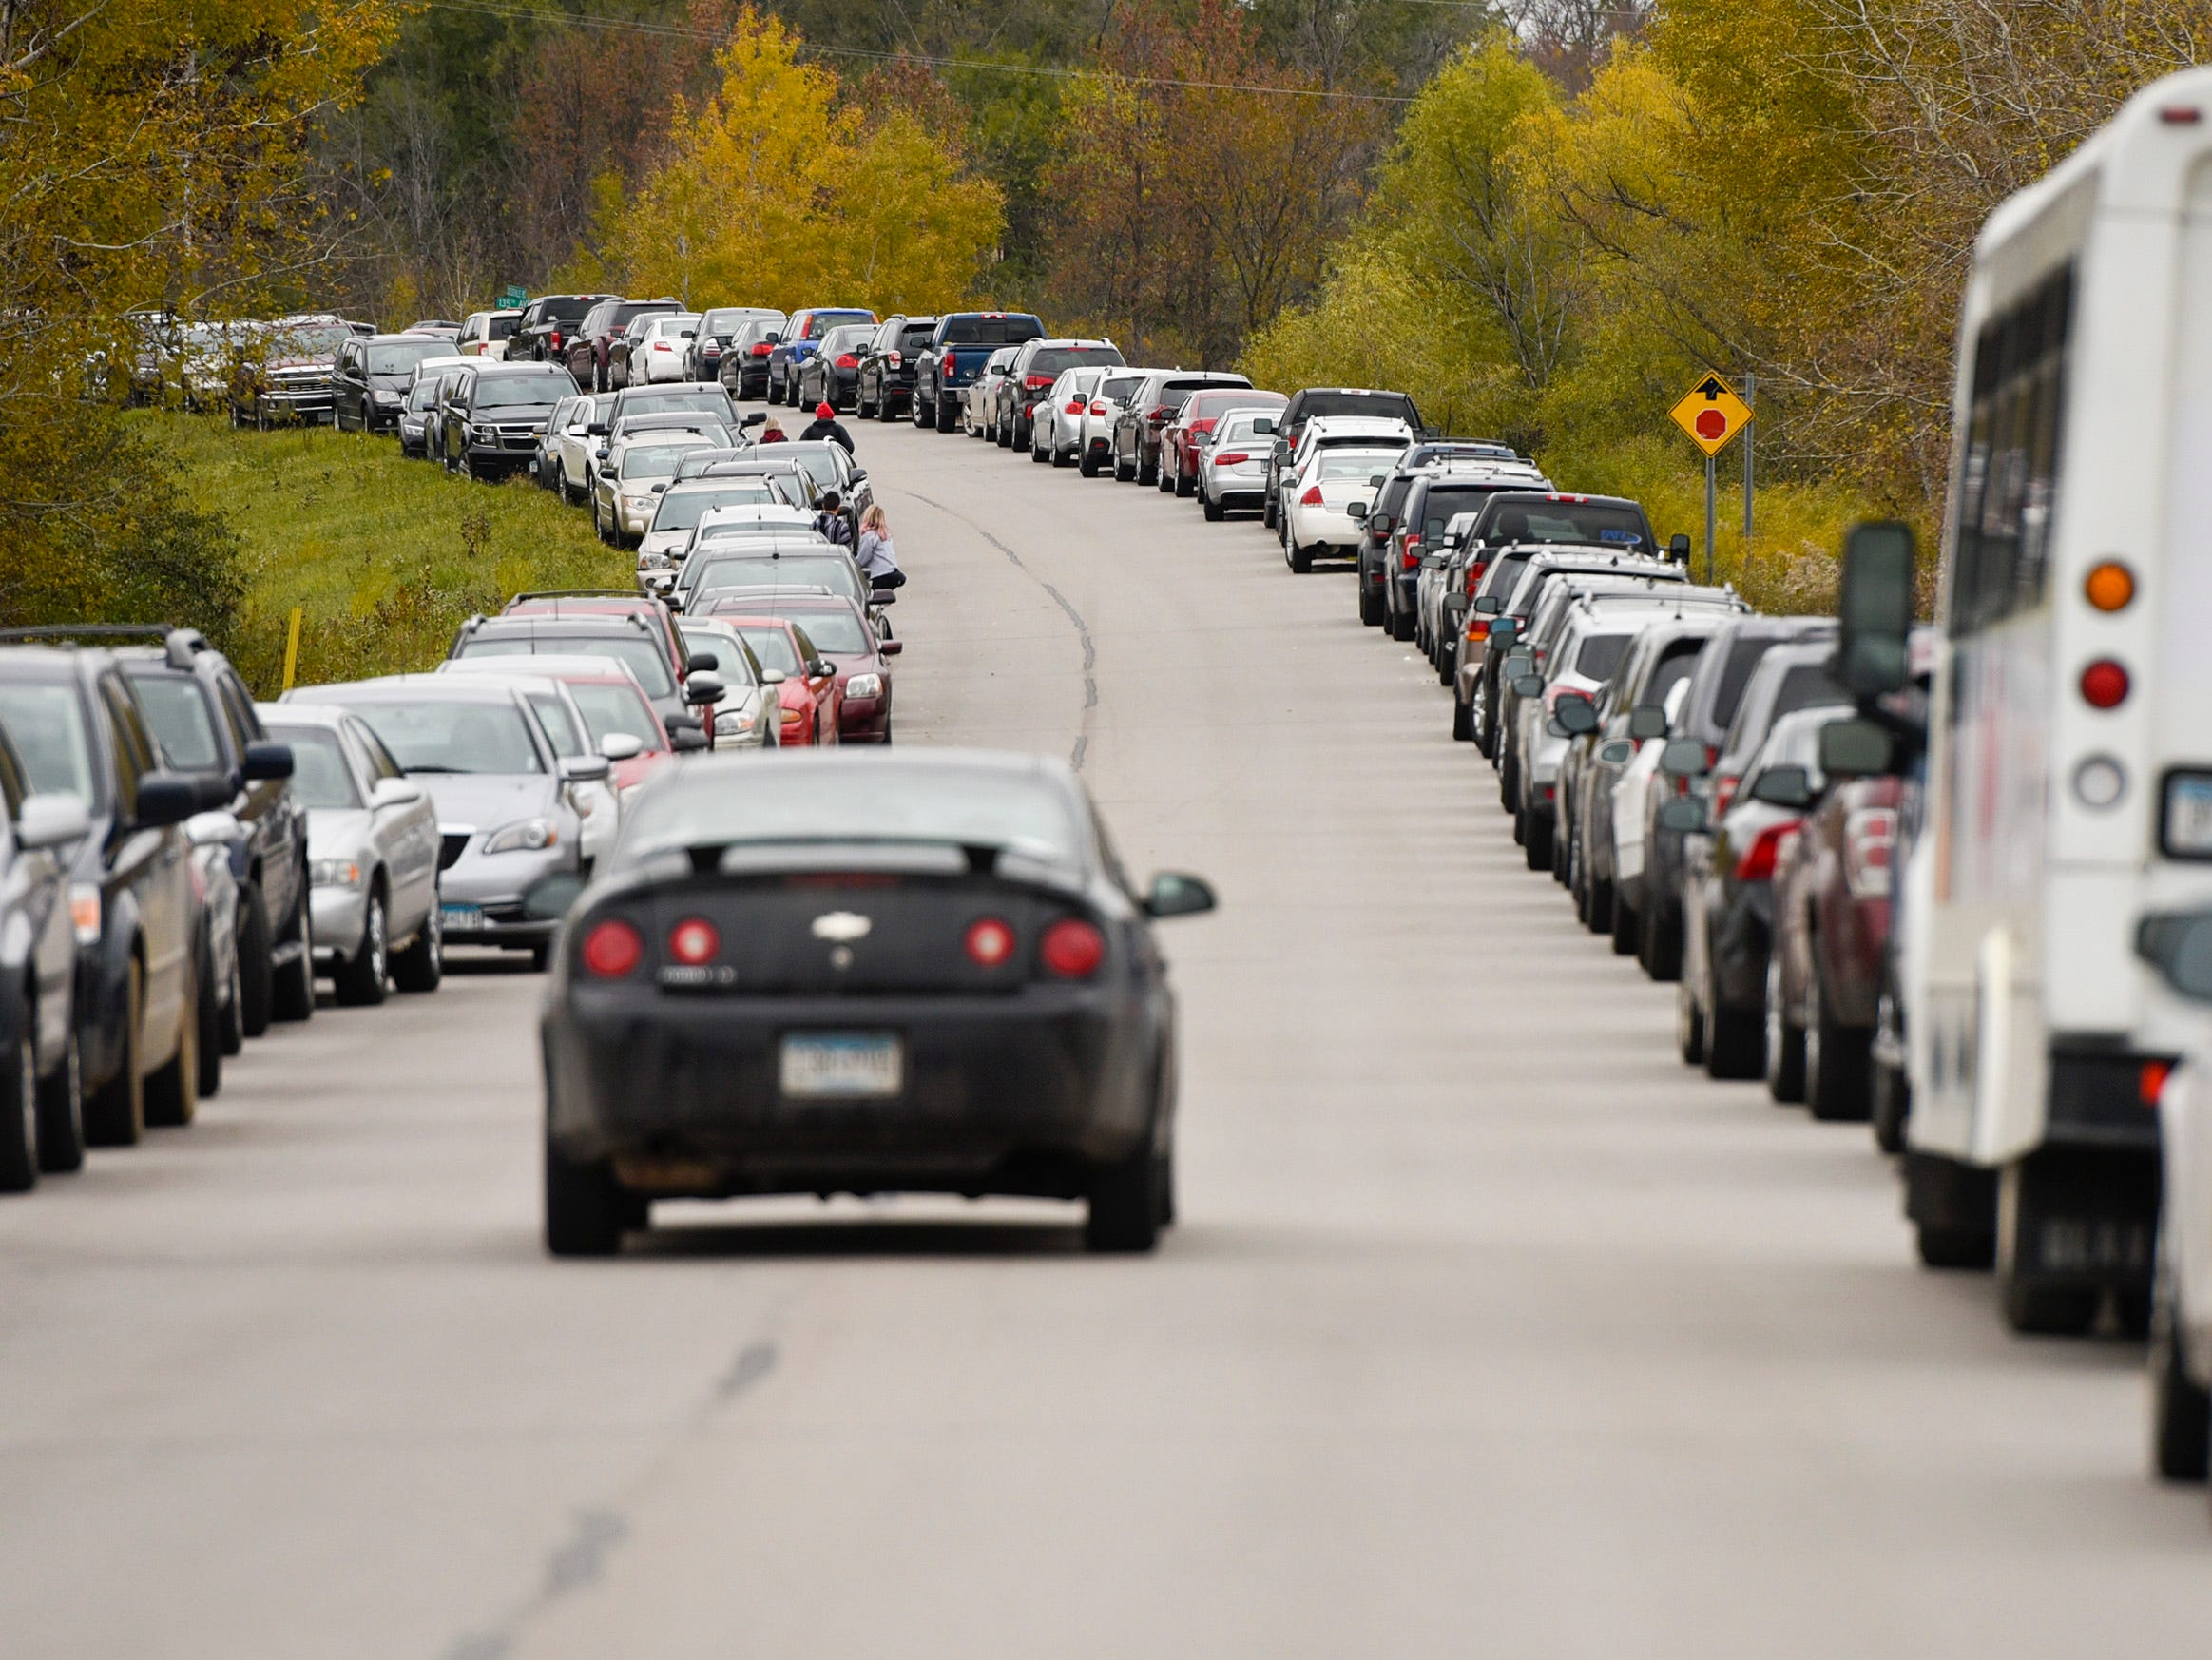 Fans parked their cars north of interstate I-94 for the St. John's and St. Thomas football game Saturday, Oct. 13, in Collegeville.